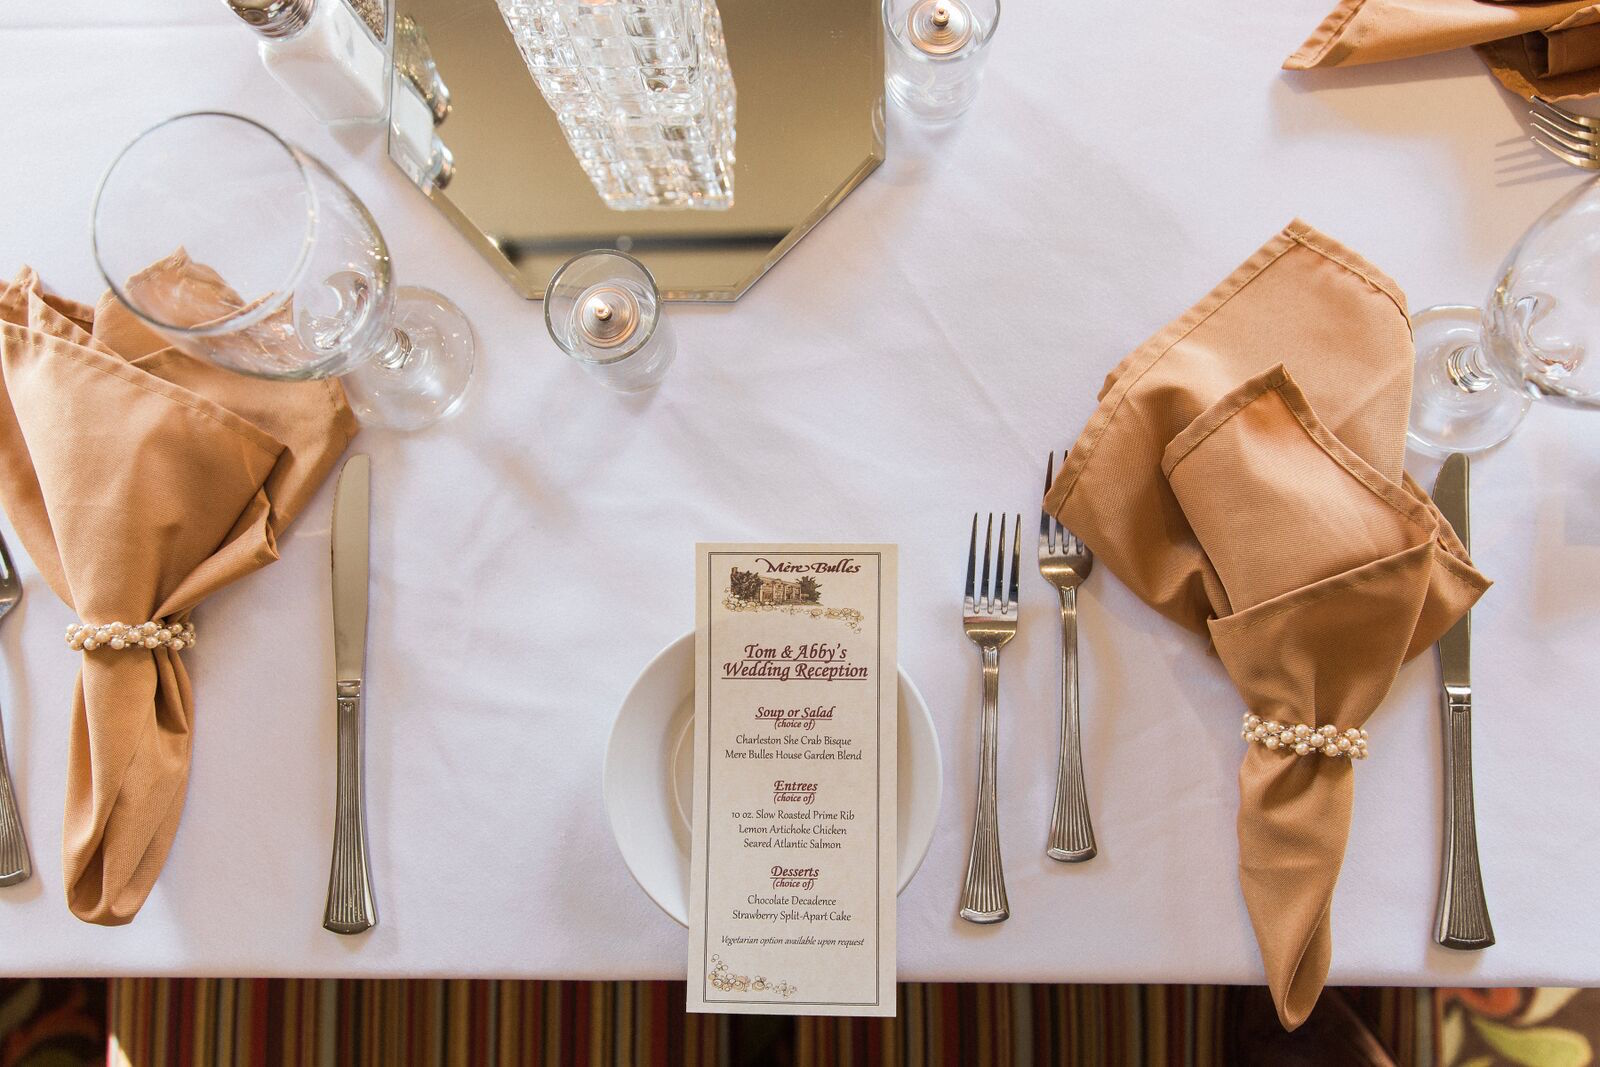 Wedding Menu Options at Mere Bulles Nashville